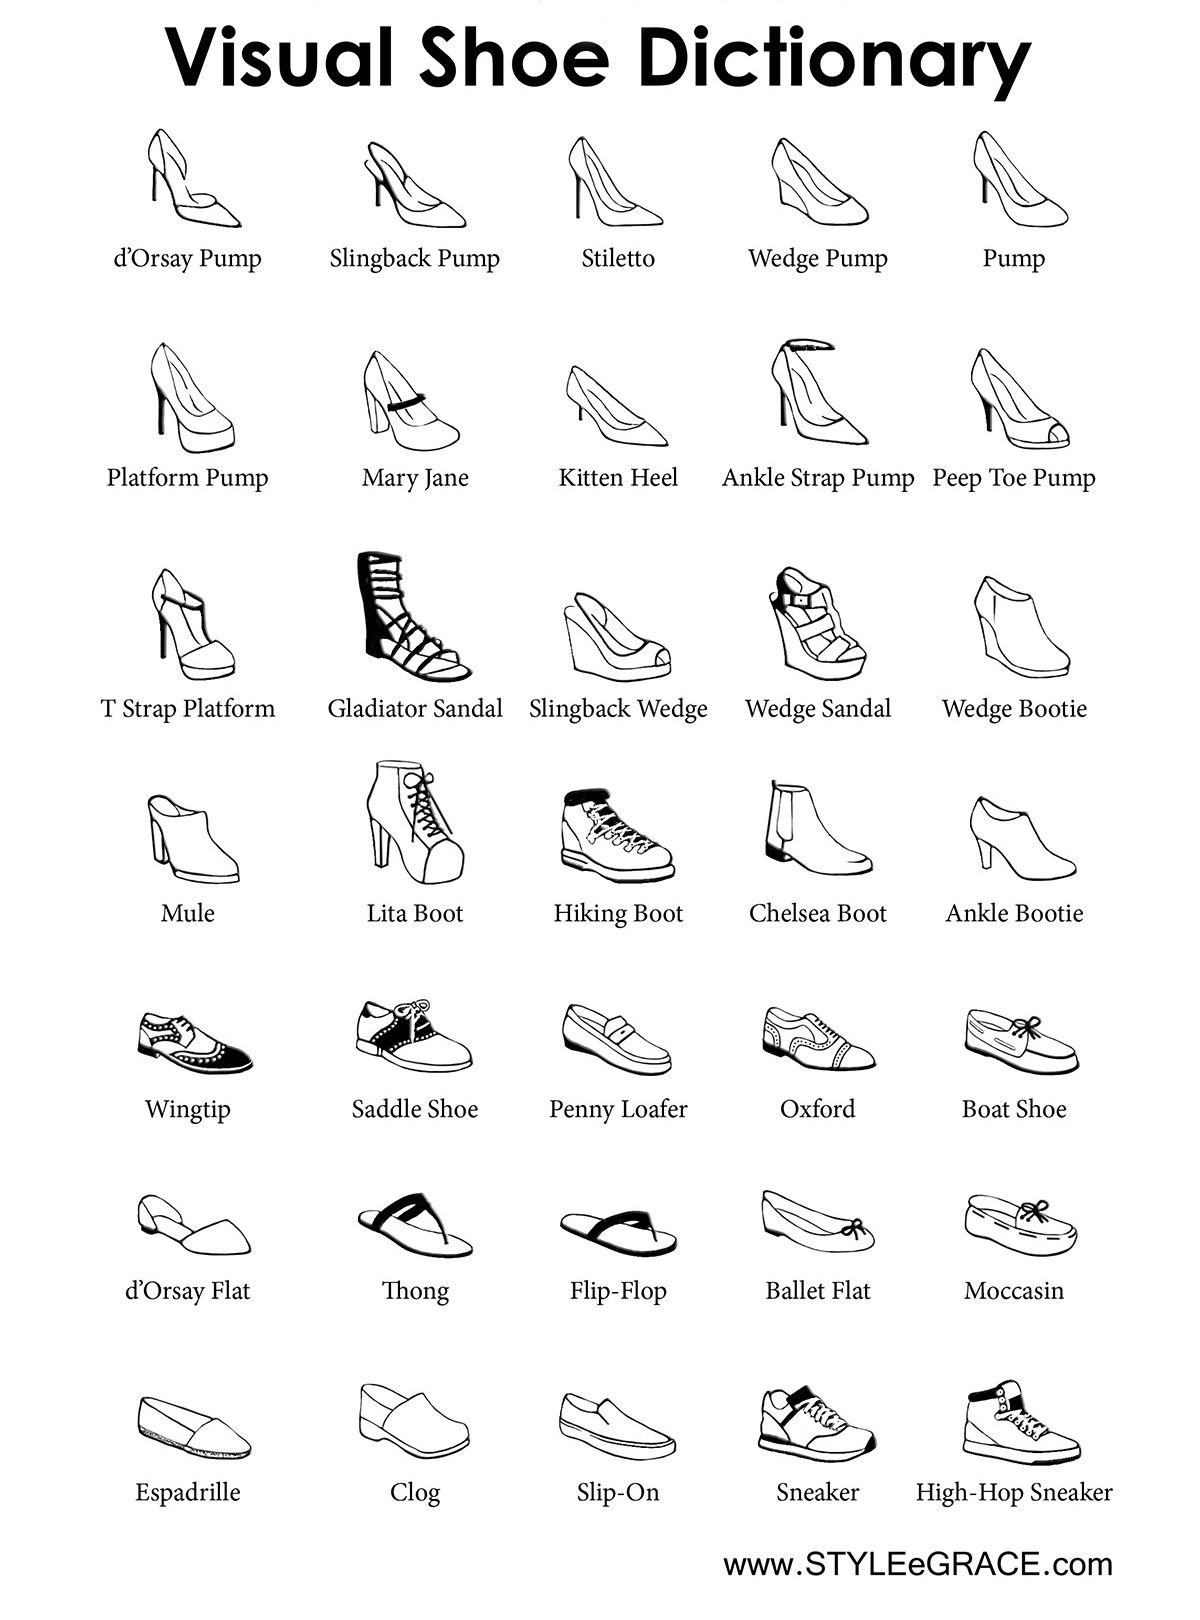 Visual shoe dictionary more visual glossaries for her backpacks bags bra types hats Fashion style categories list